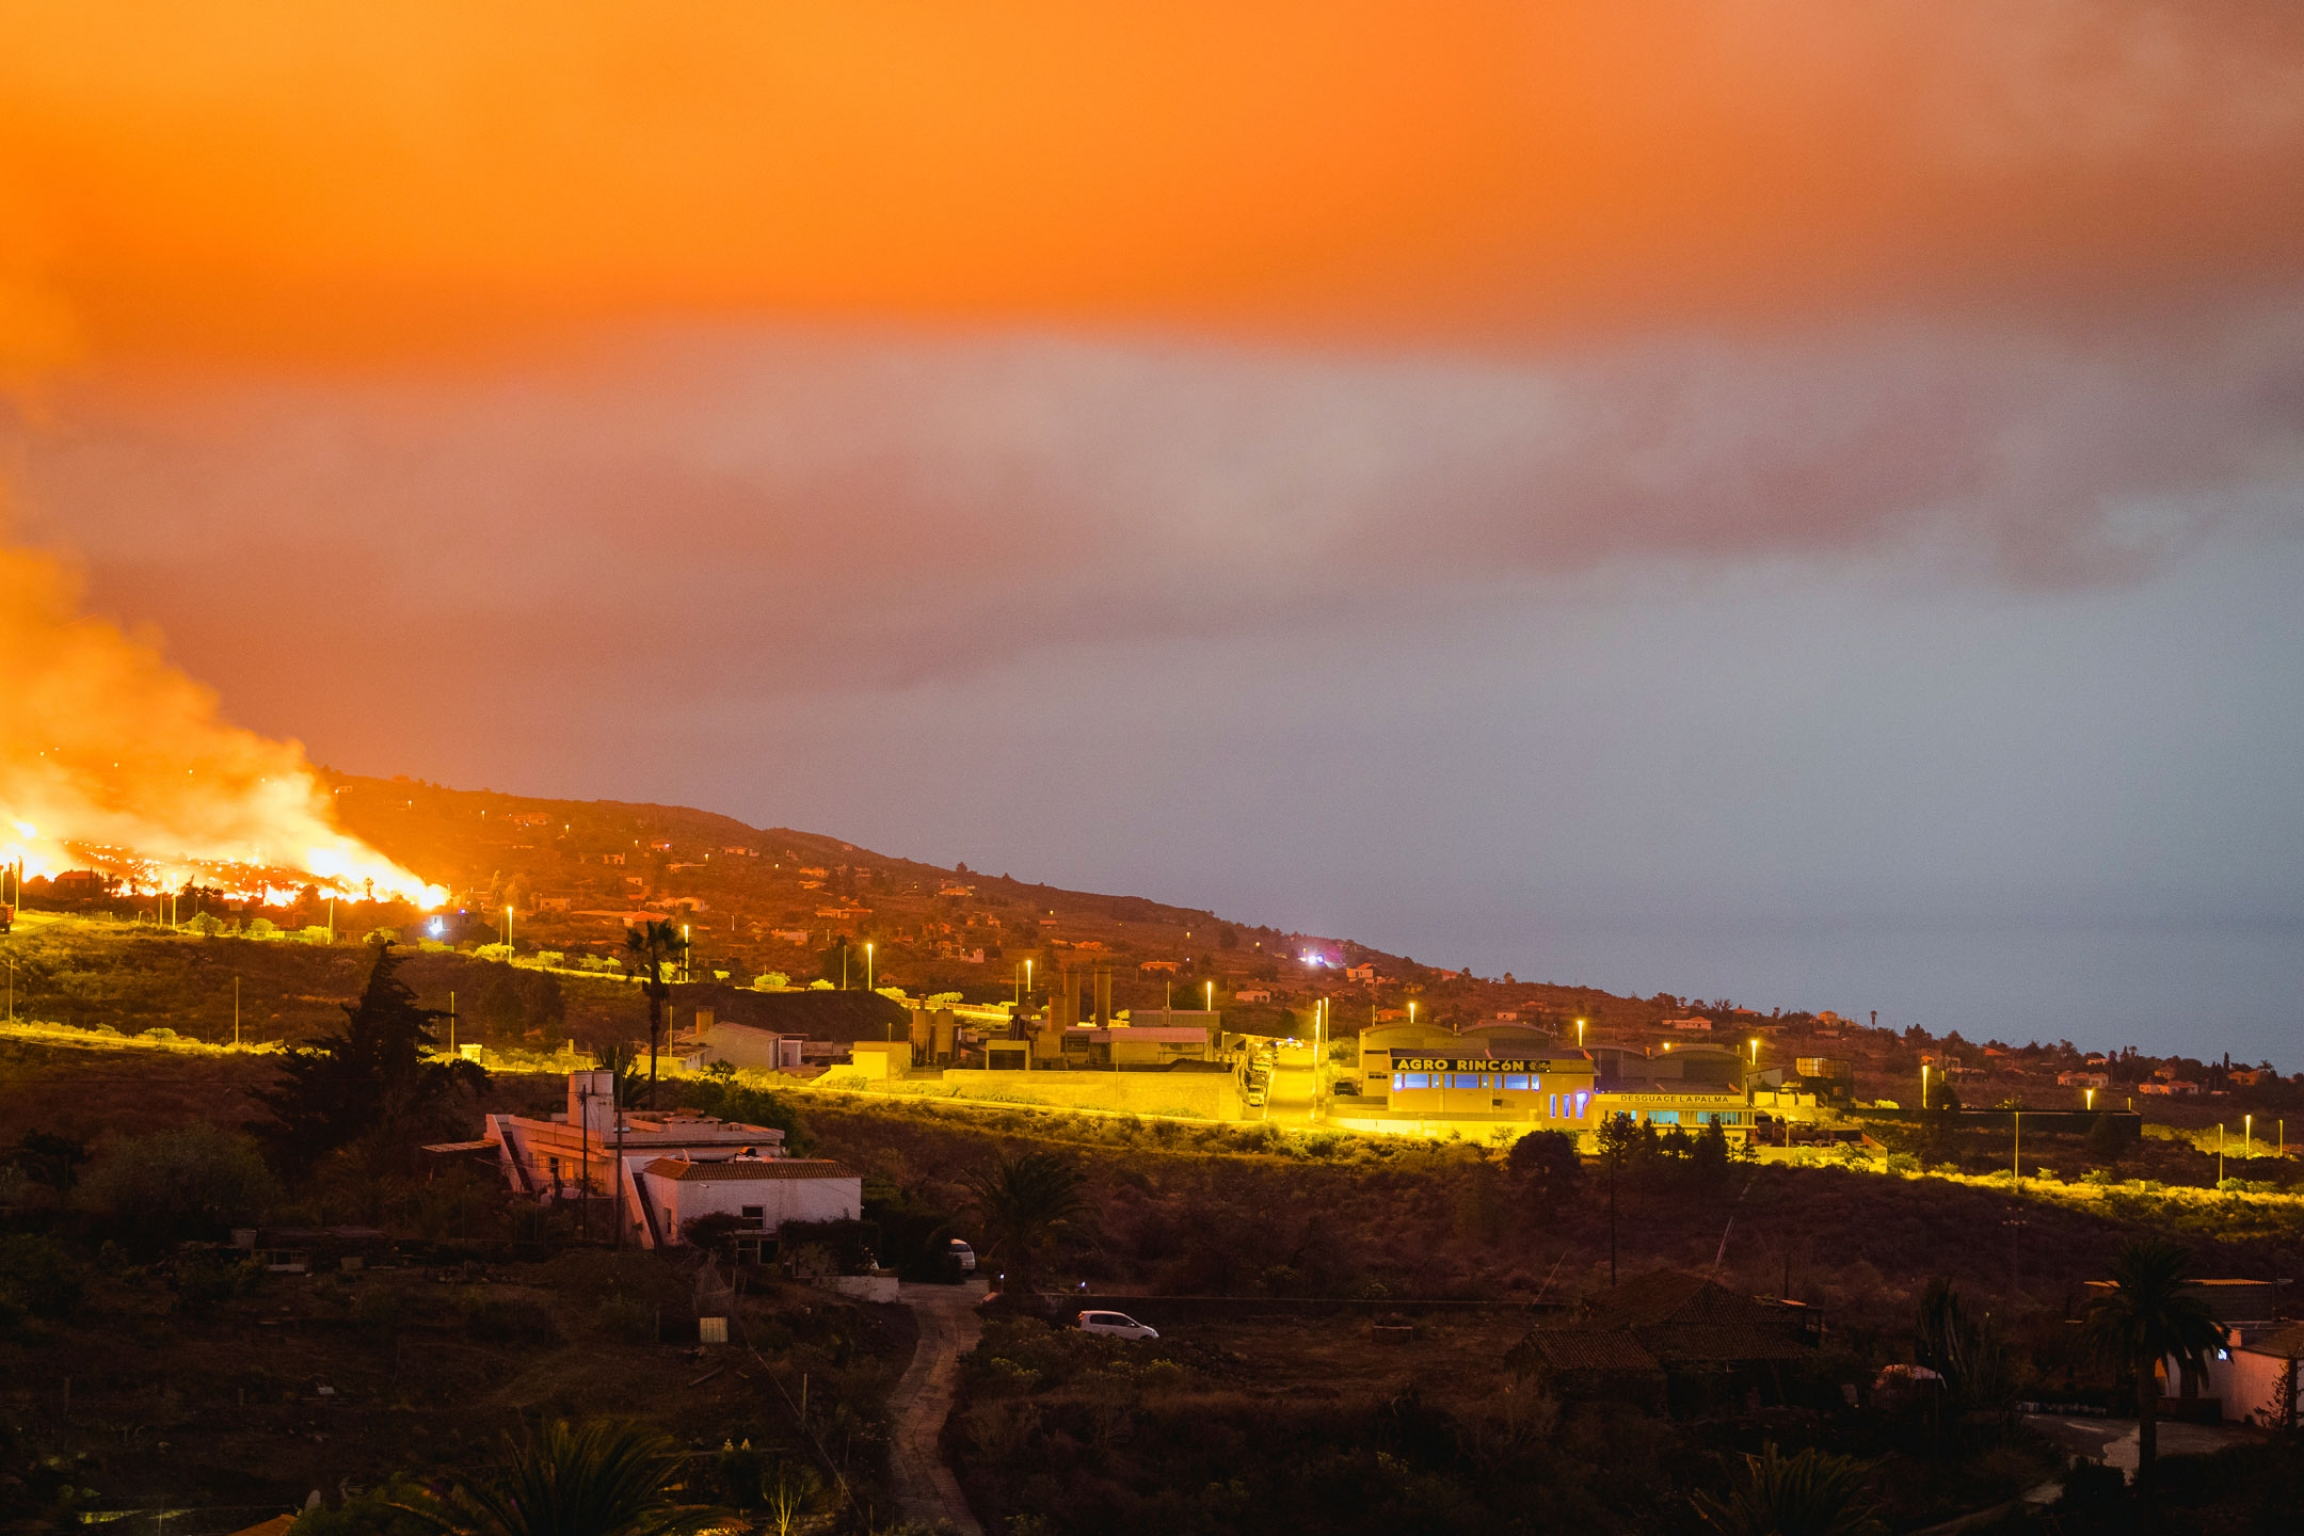 Lava flows from an eruption of a volcano near El Paso on the island of La Palma in the Canaries, Spain, in the early hours of Monday, Sept. 20, 2021.